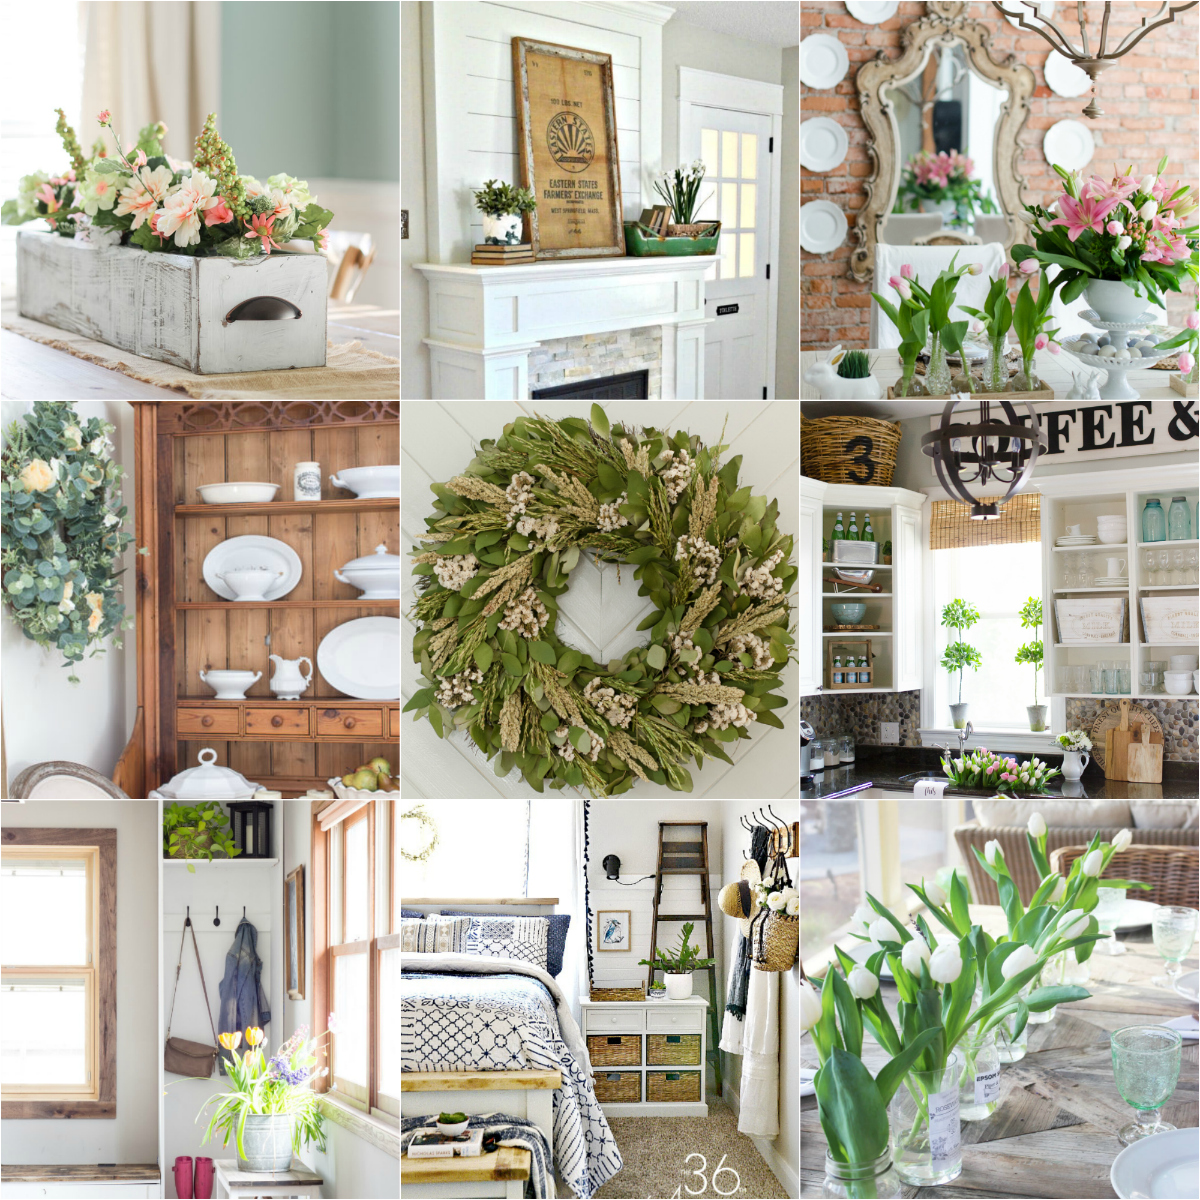 Home Decor: 18 Spring Decor Ideas